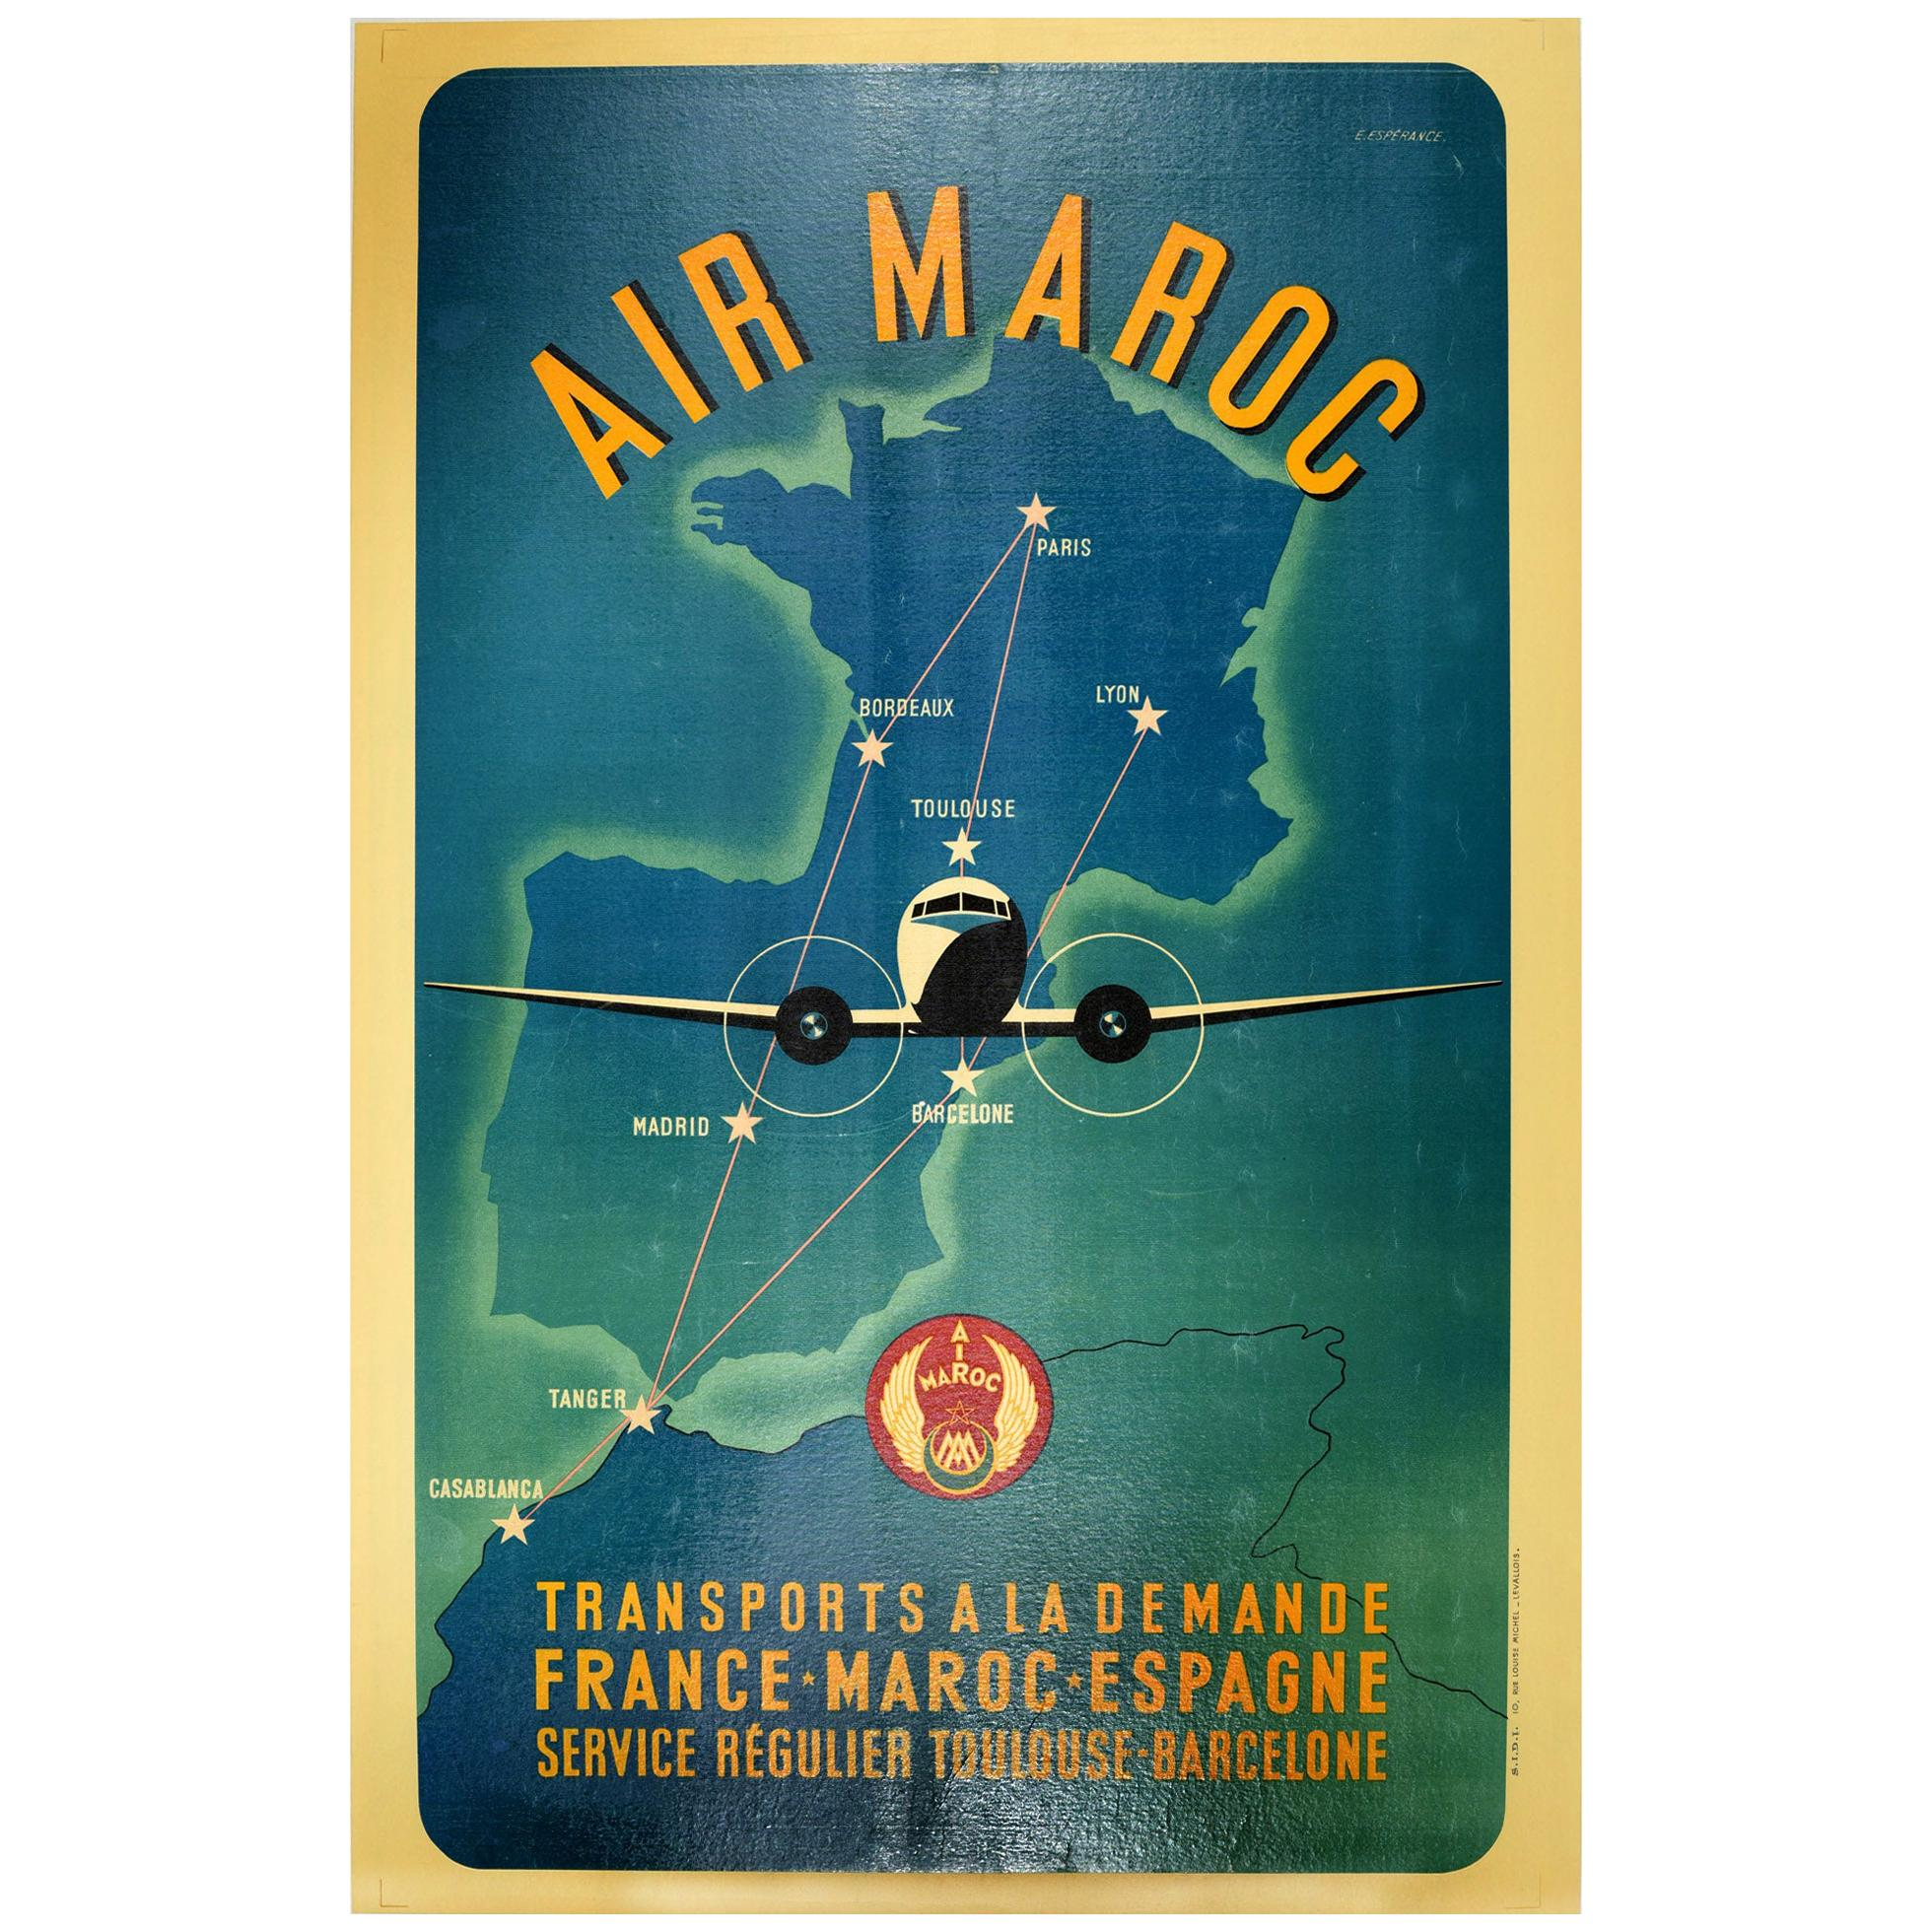 Original Vintage Air Maroc Travel Poster Route Map France Morocco Spain Services